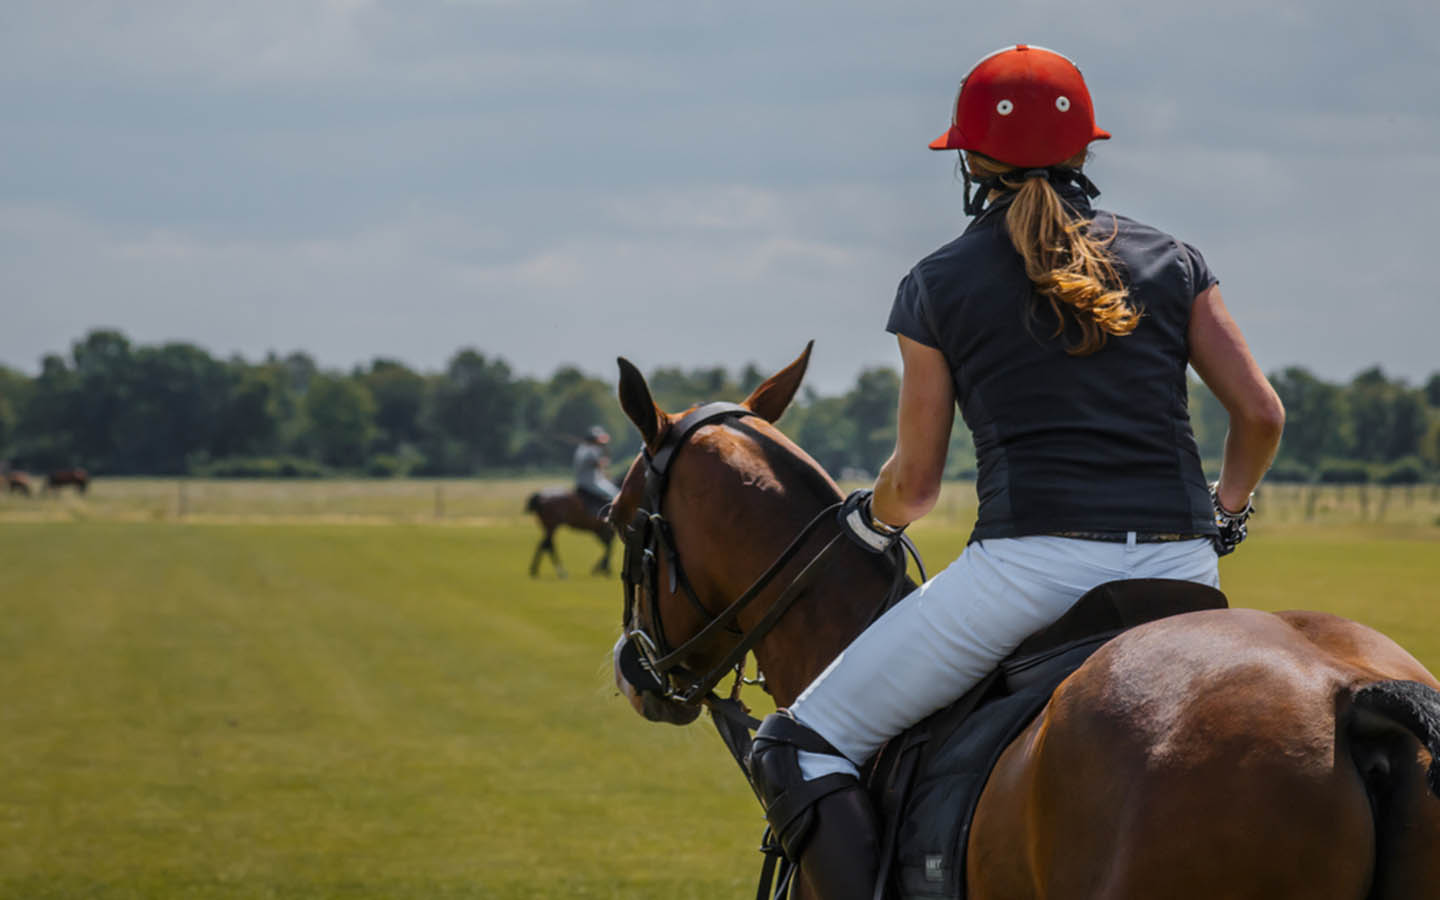 Lady playing polo